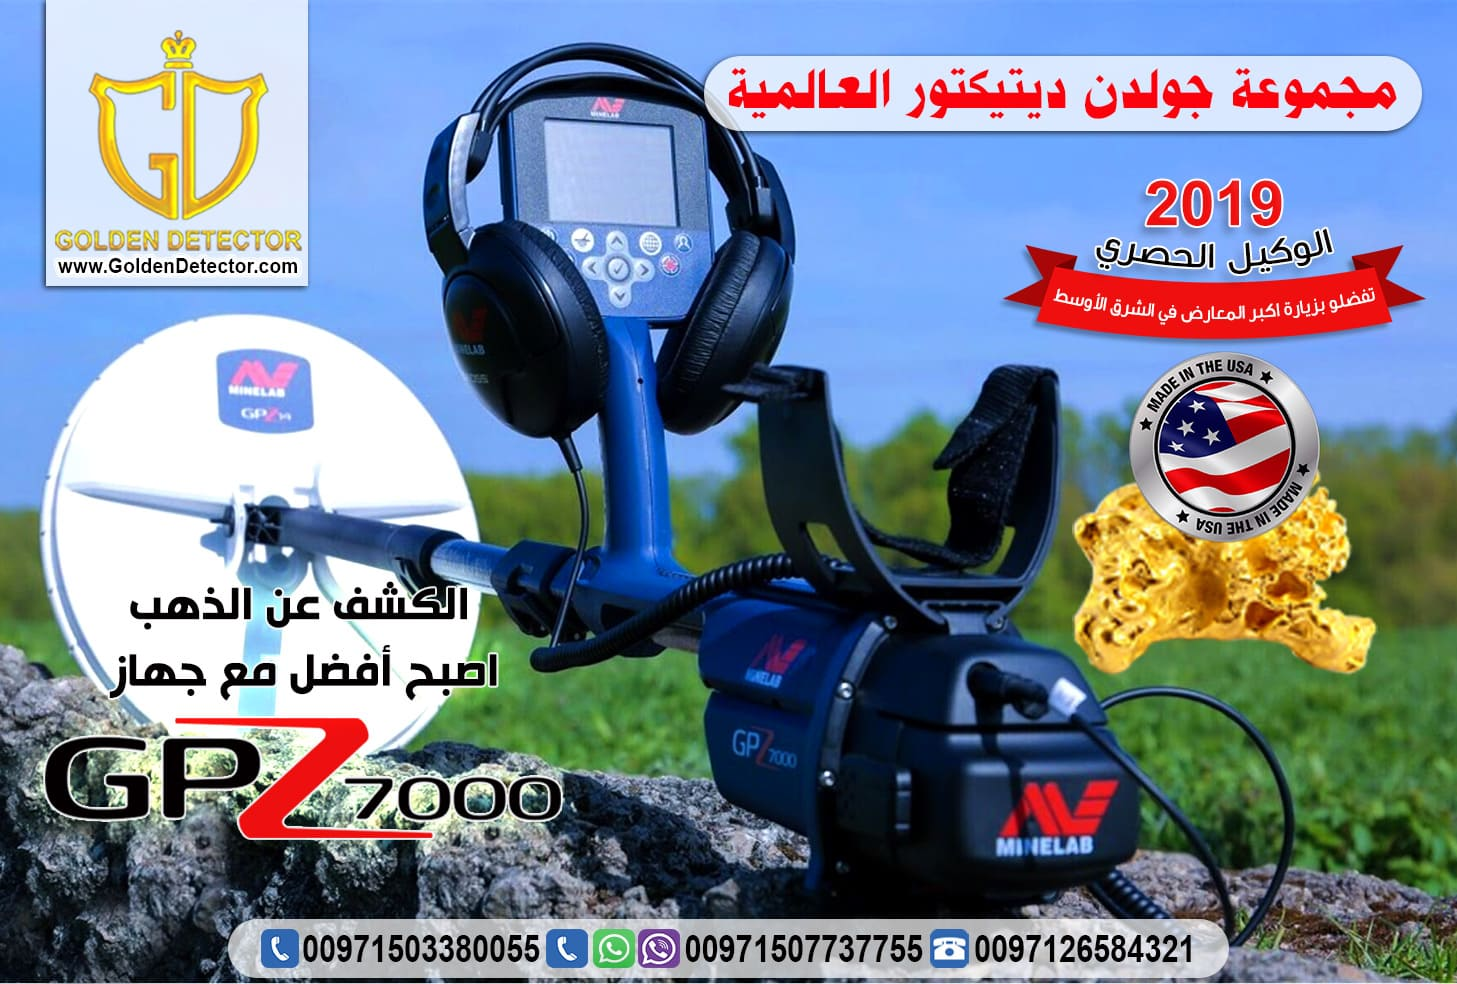 GPZ7000 جاهز كشف الذهب في السعوديه الان